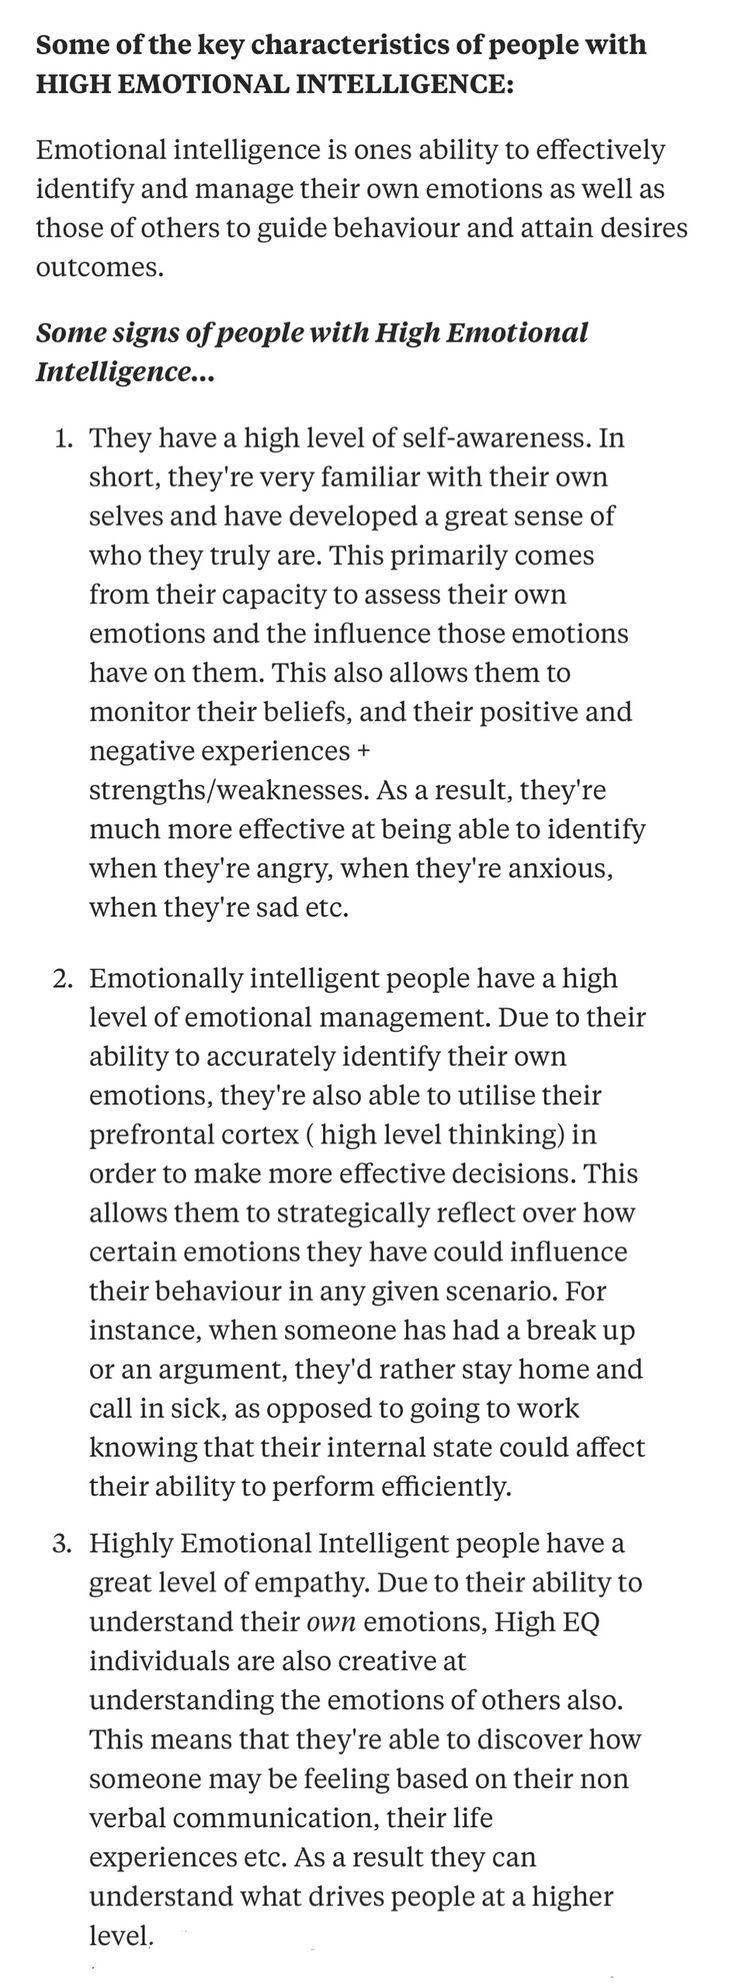 Some of the key characteristics of people with high emotional intelligence . . .